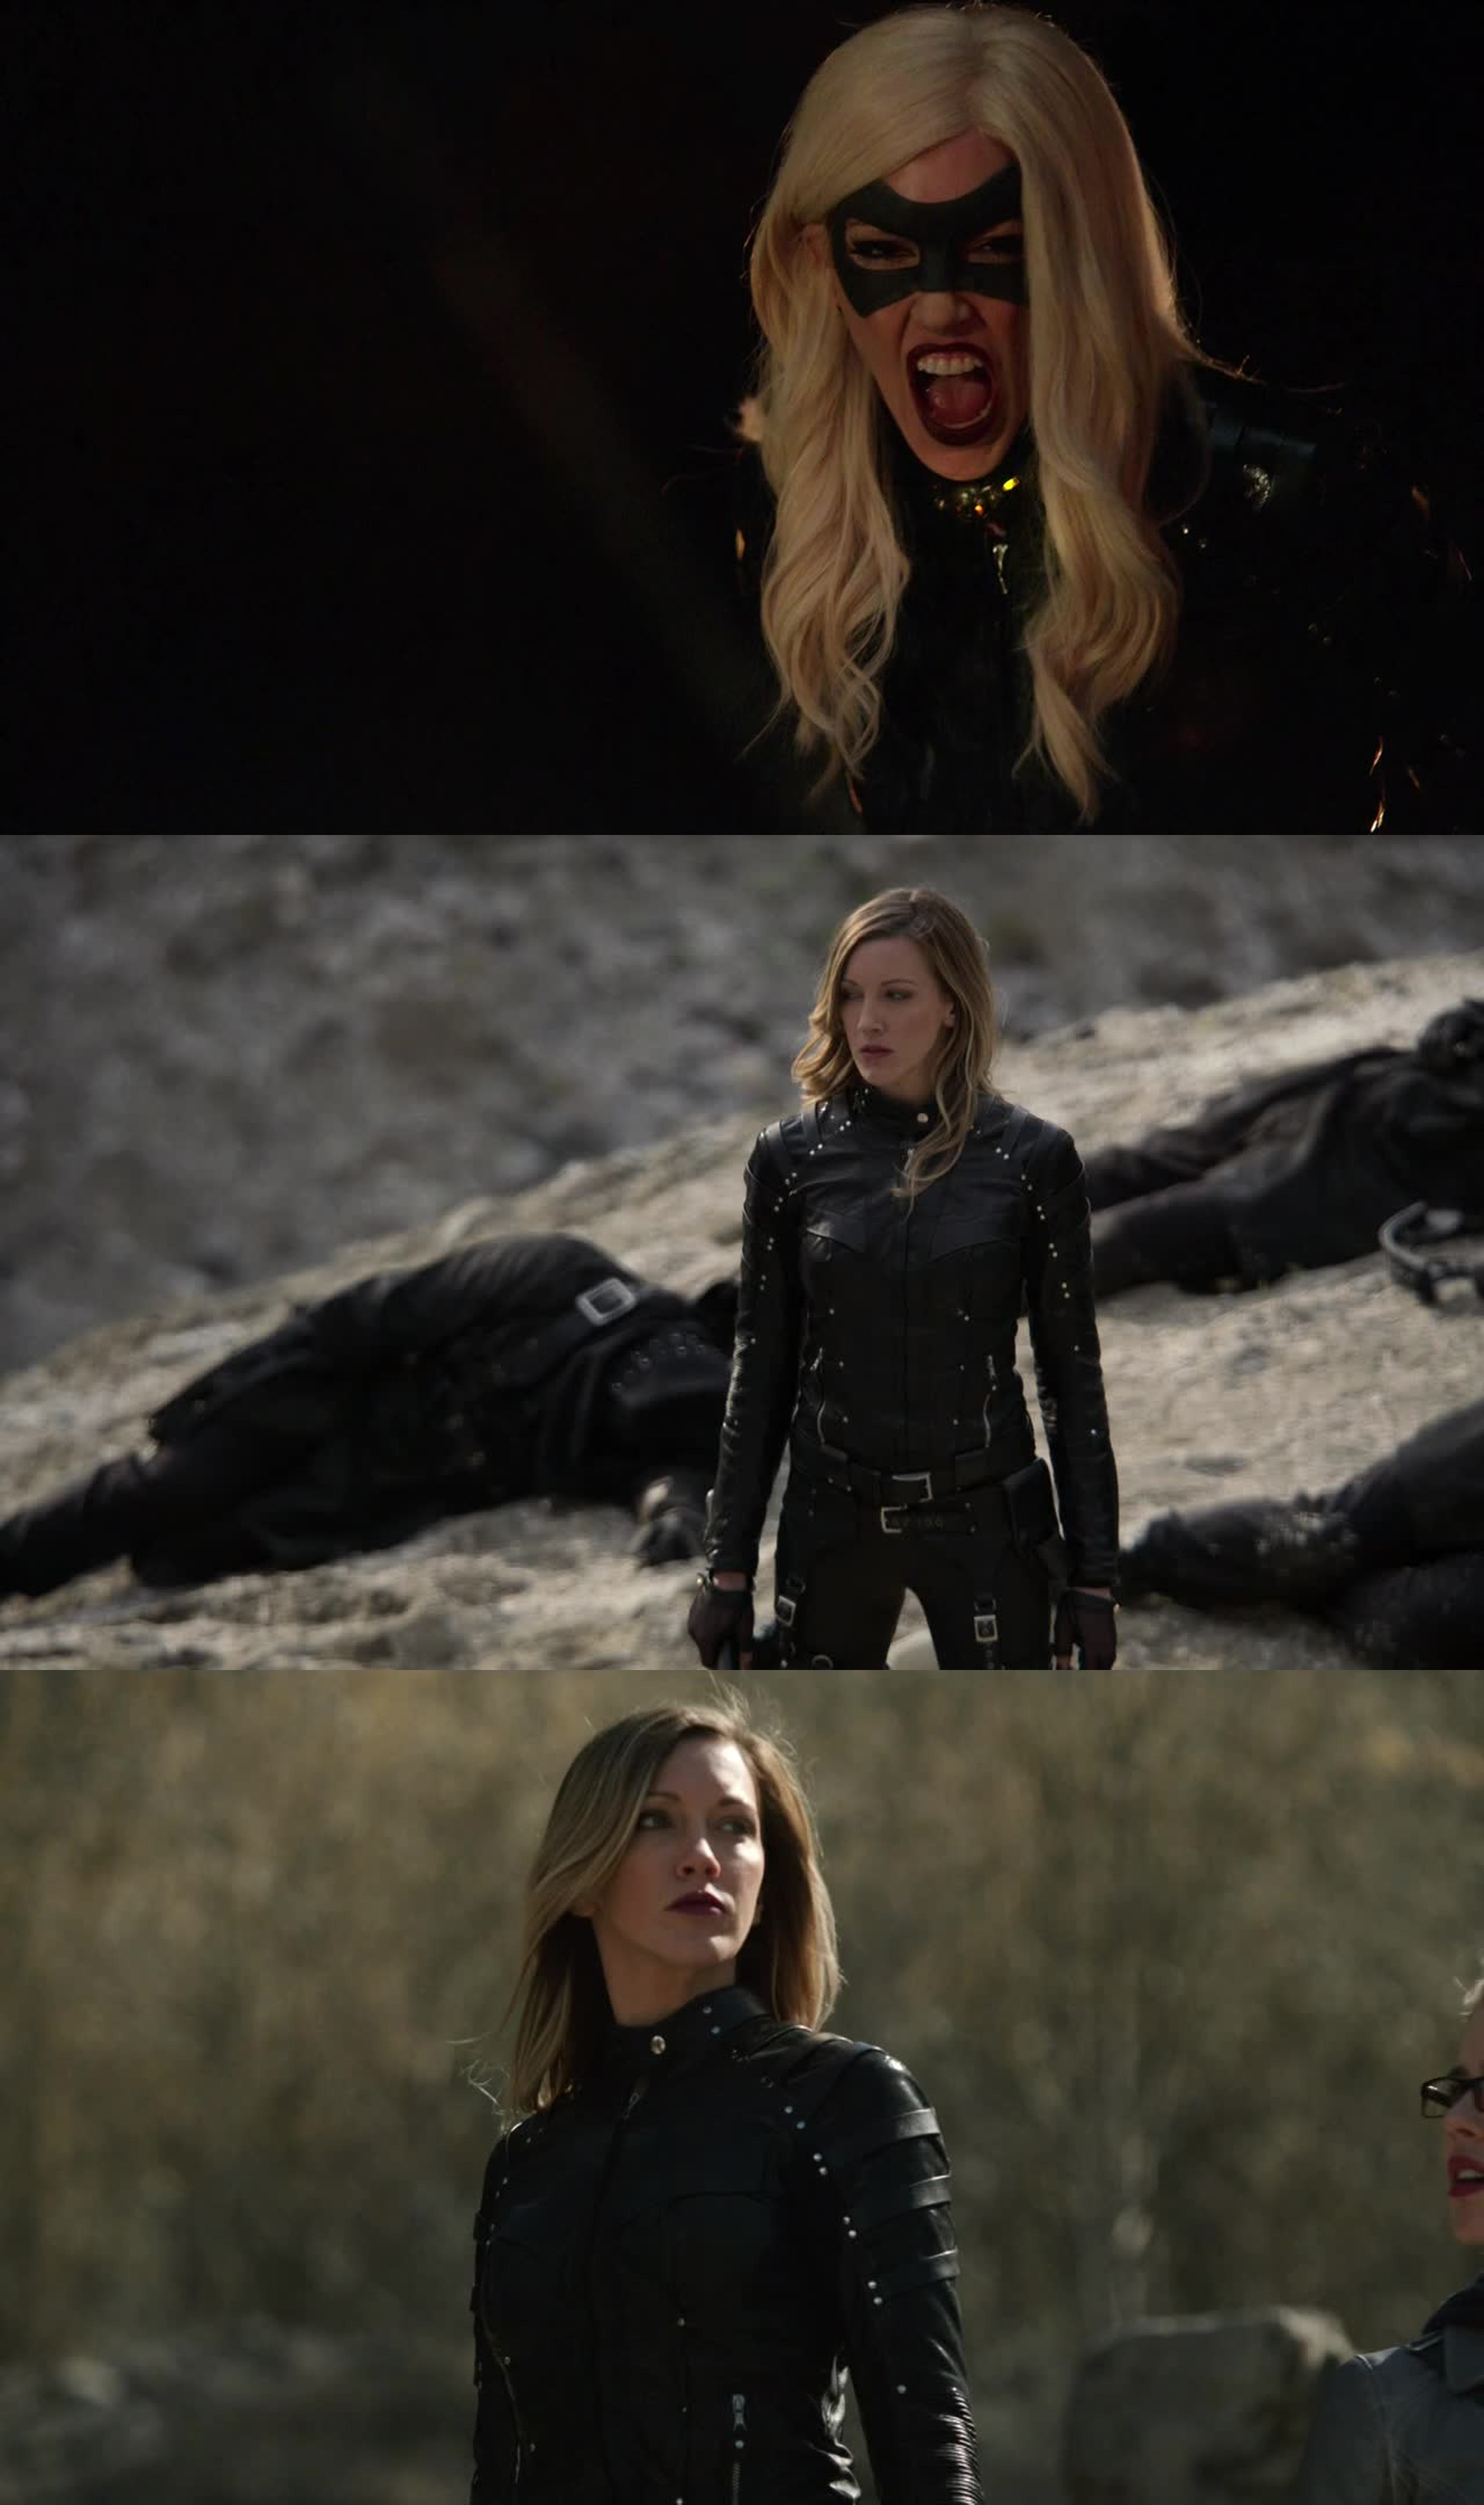 Laurel is just a BADASS here ! Love her <3